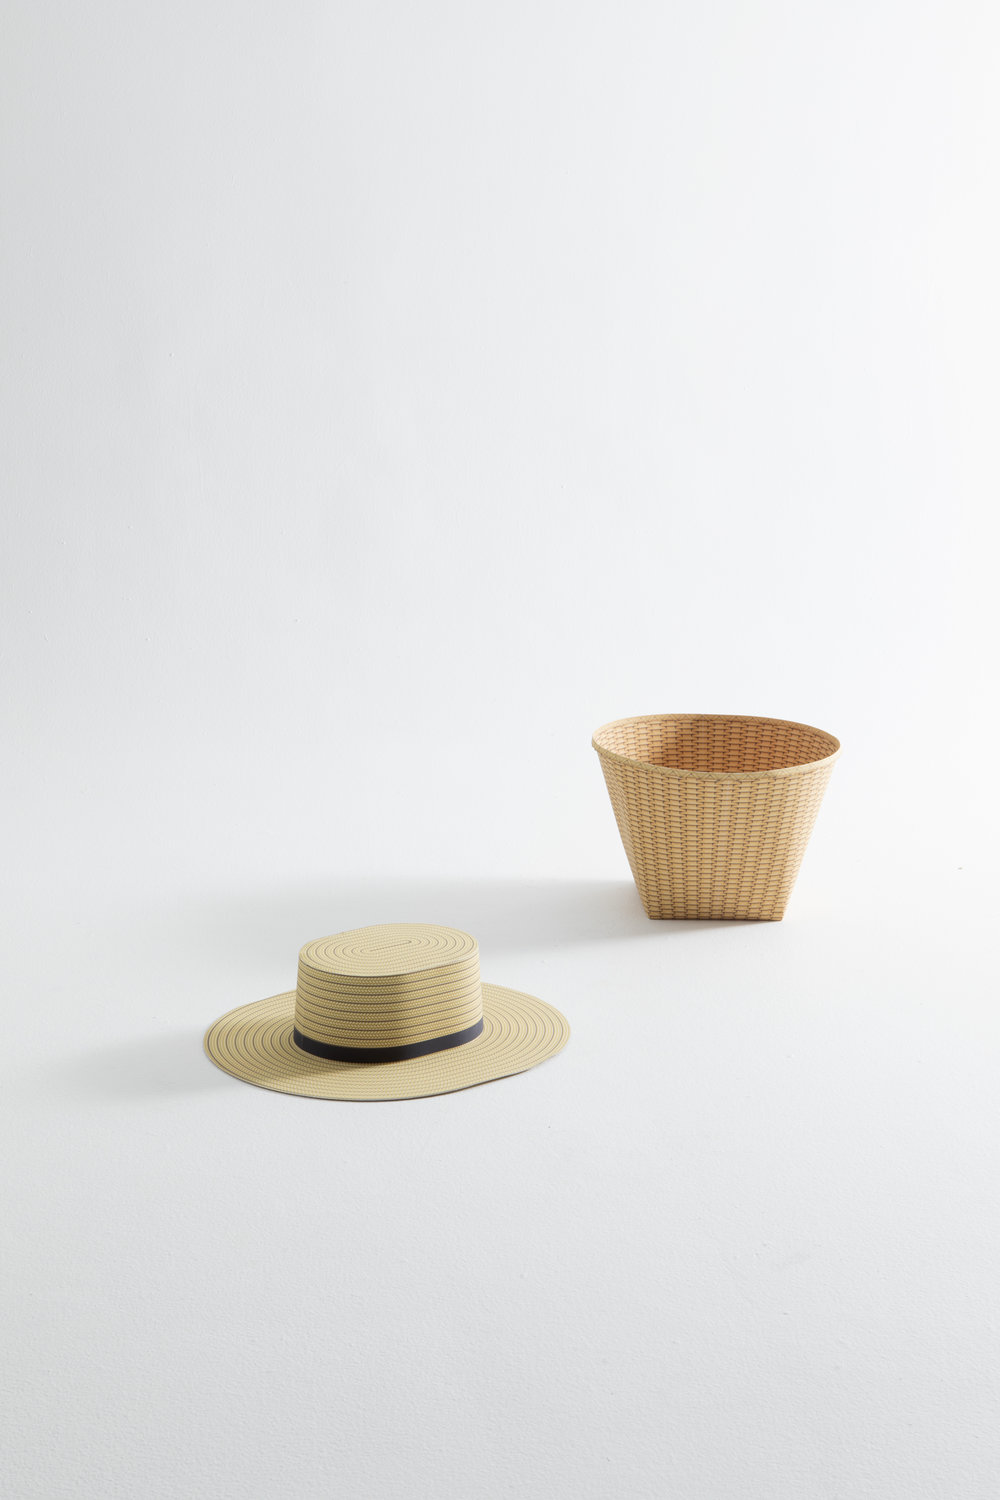 Chris Specce paper basket and hat1.jpg